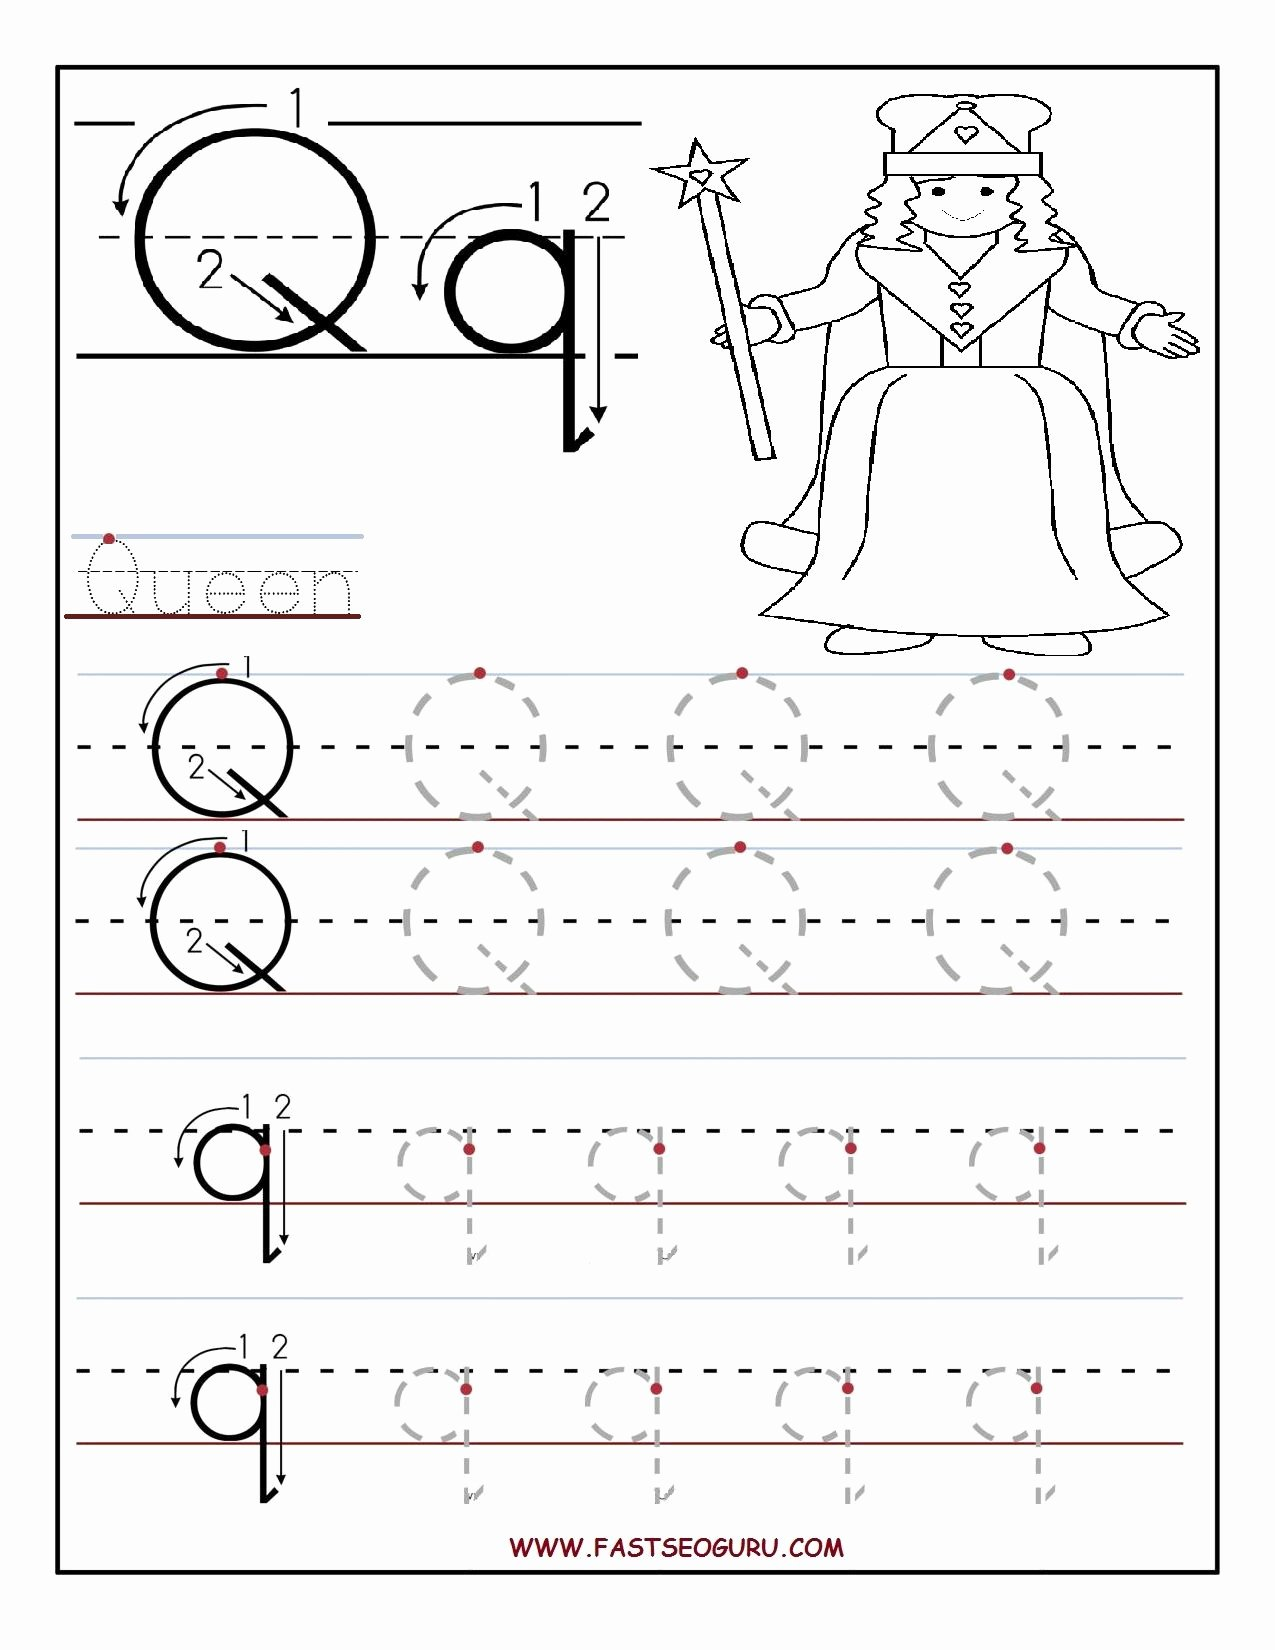 Letter Q Worksheets for Preschoolers Ideas Printable Letter Q Tracing Worksheets for Preschool